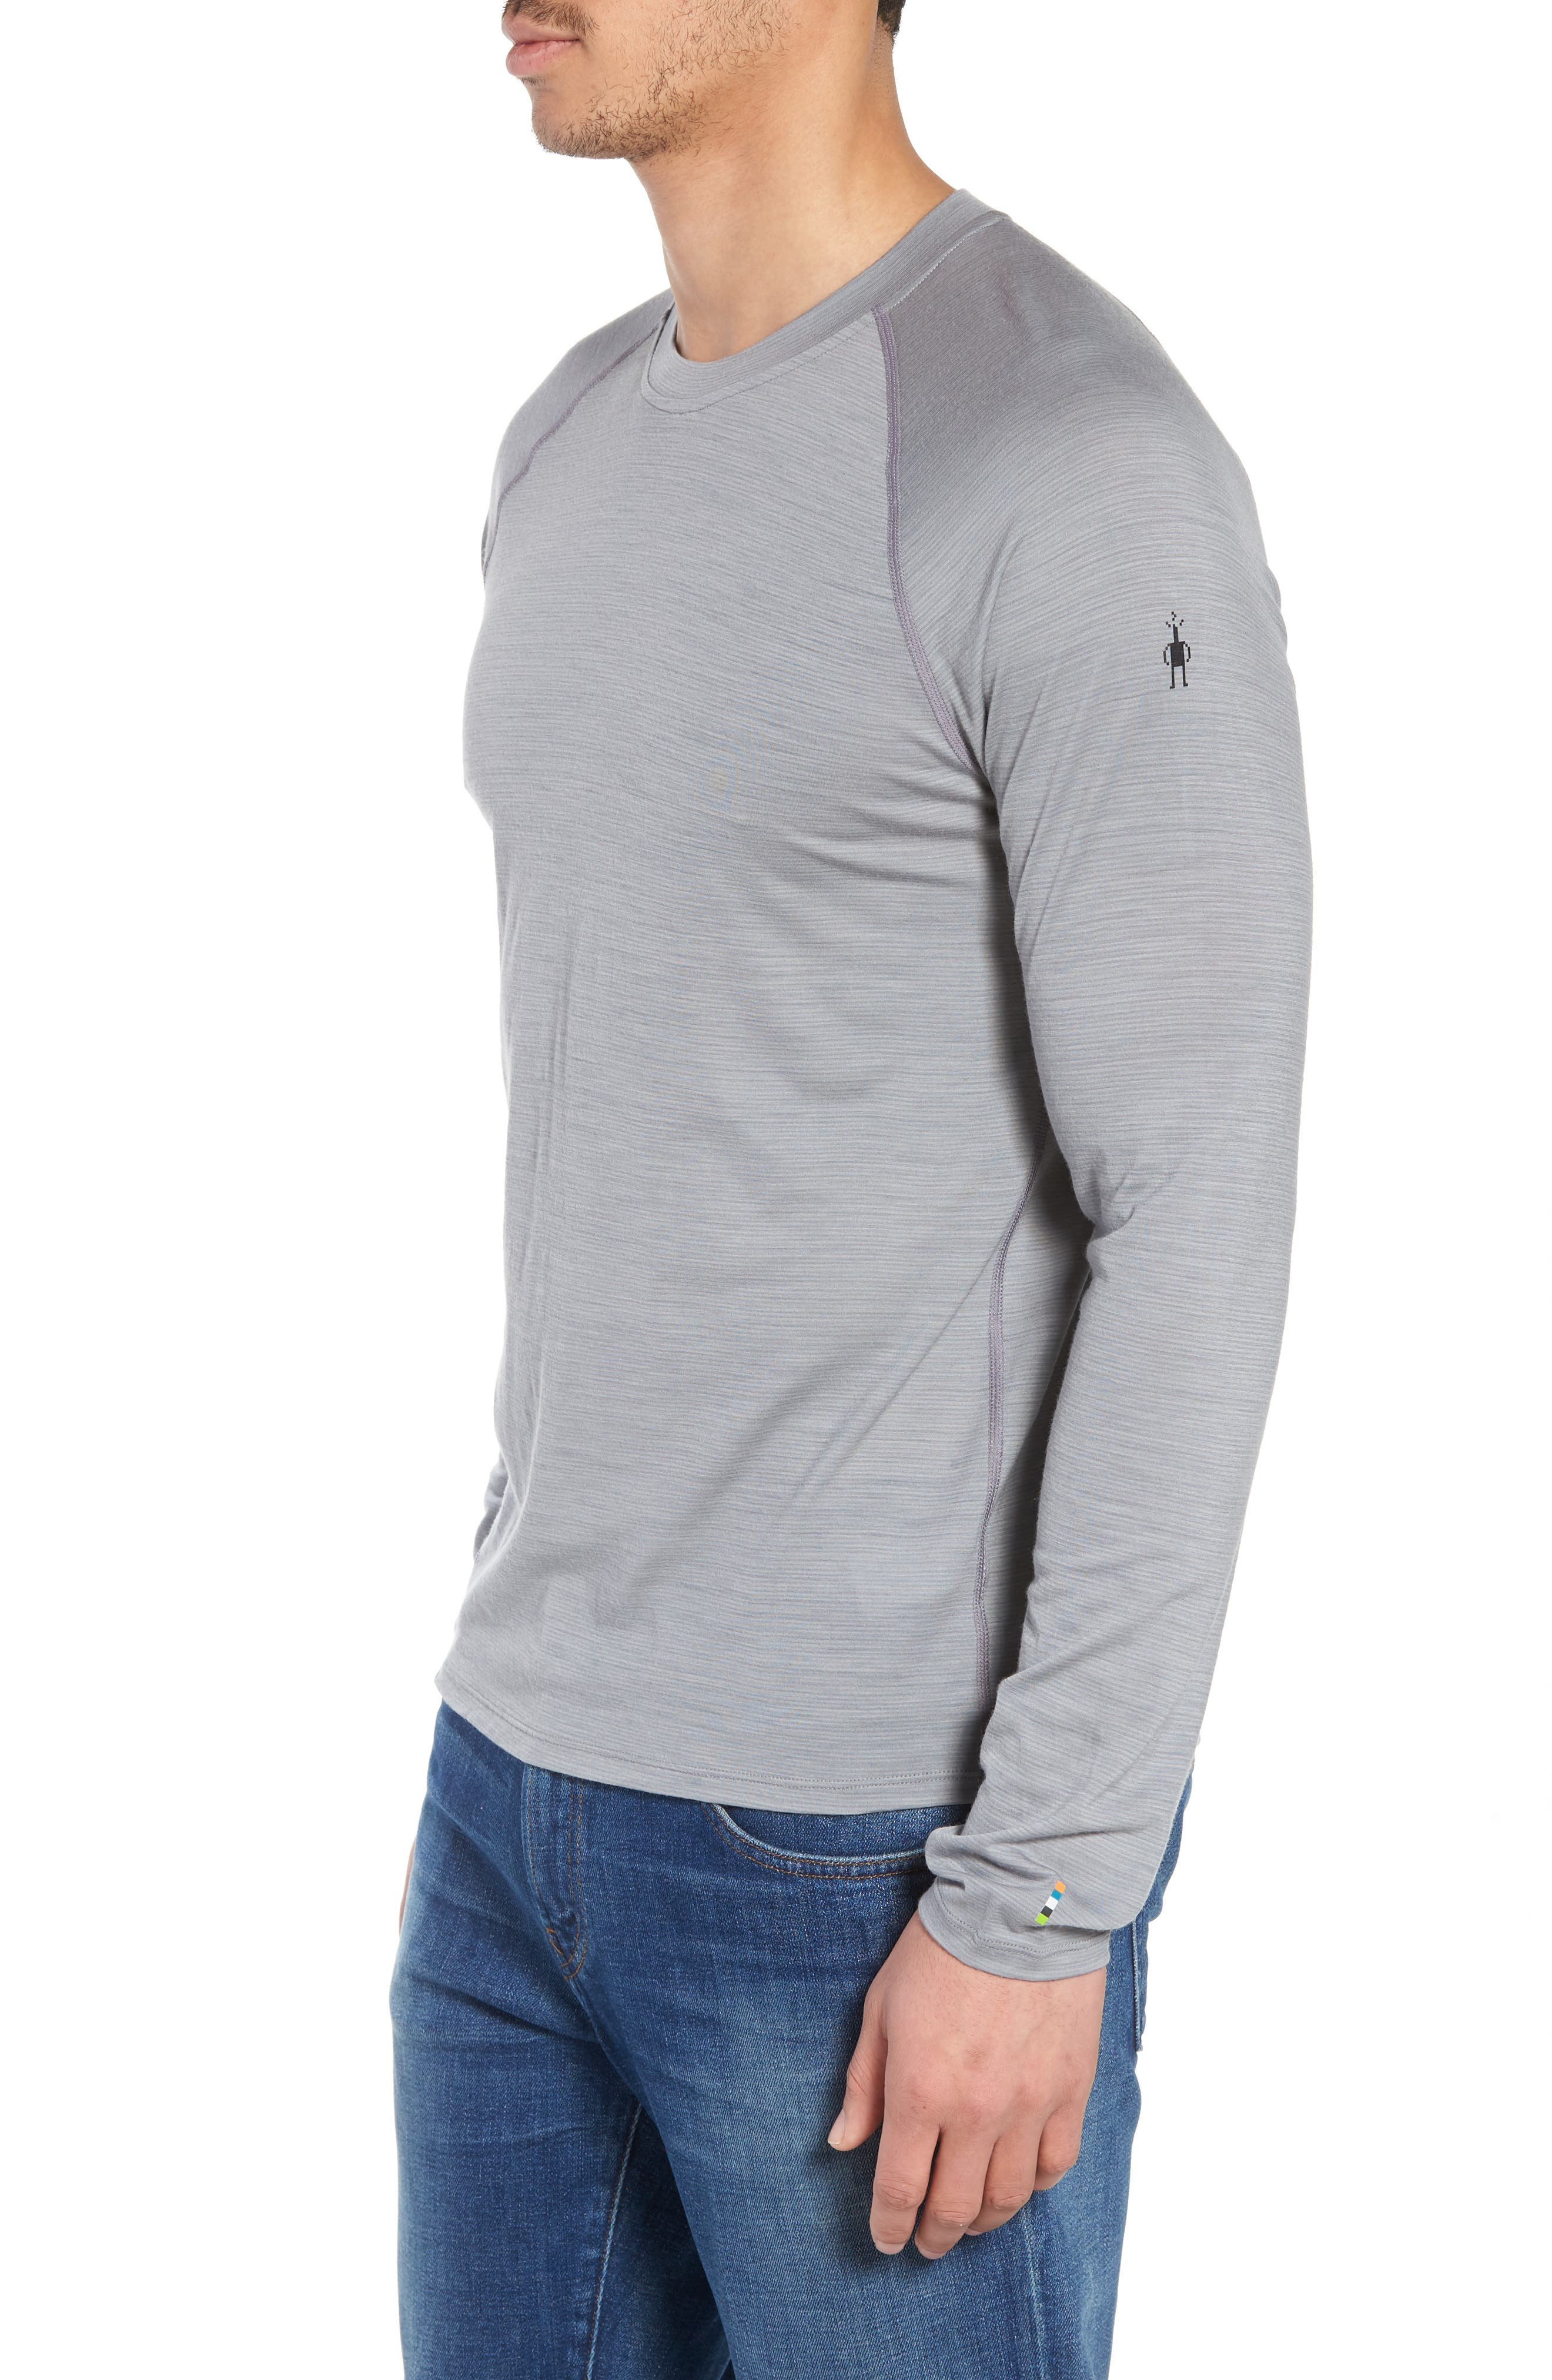 SMARTWOOL,                             Merino 150 Wool Blend Long Sleeve T-Shirt,                             Alternate thumbnail 3, color,                             LIGHT GREY